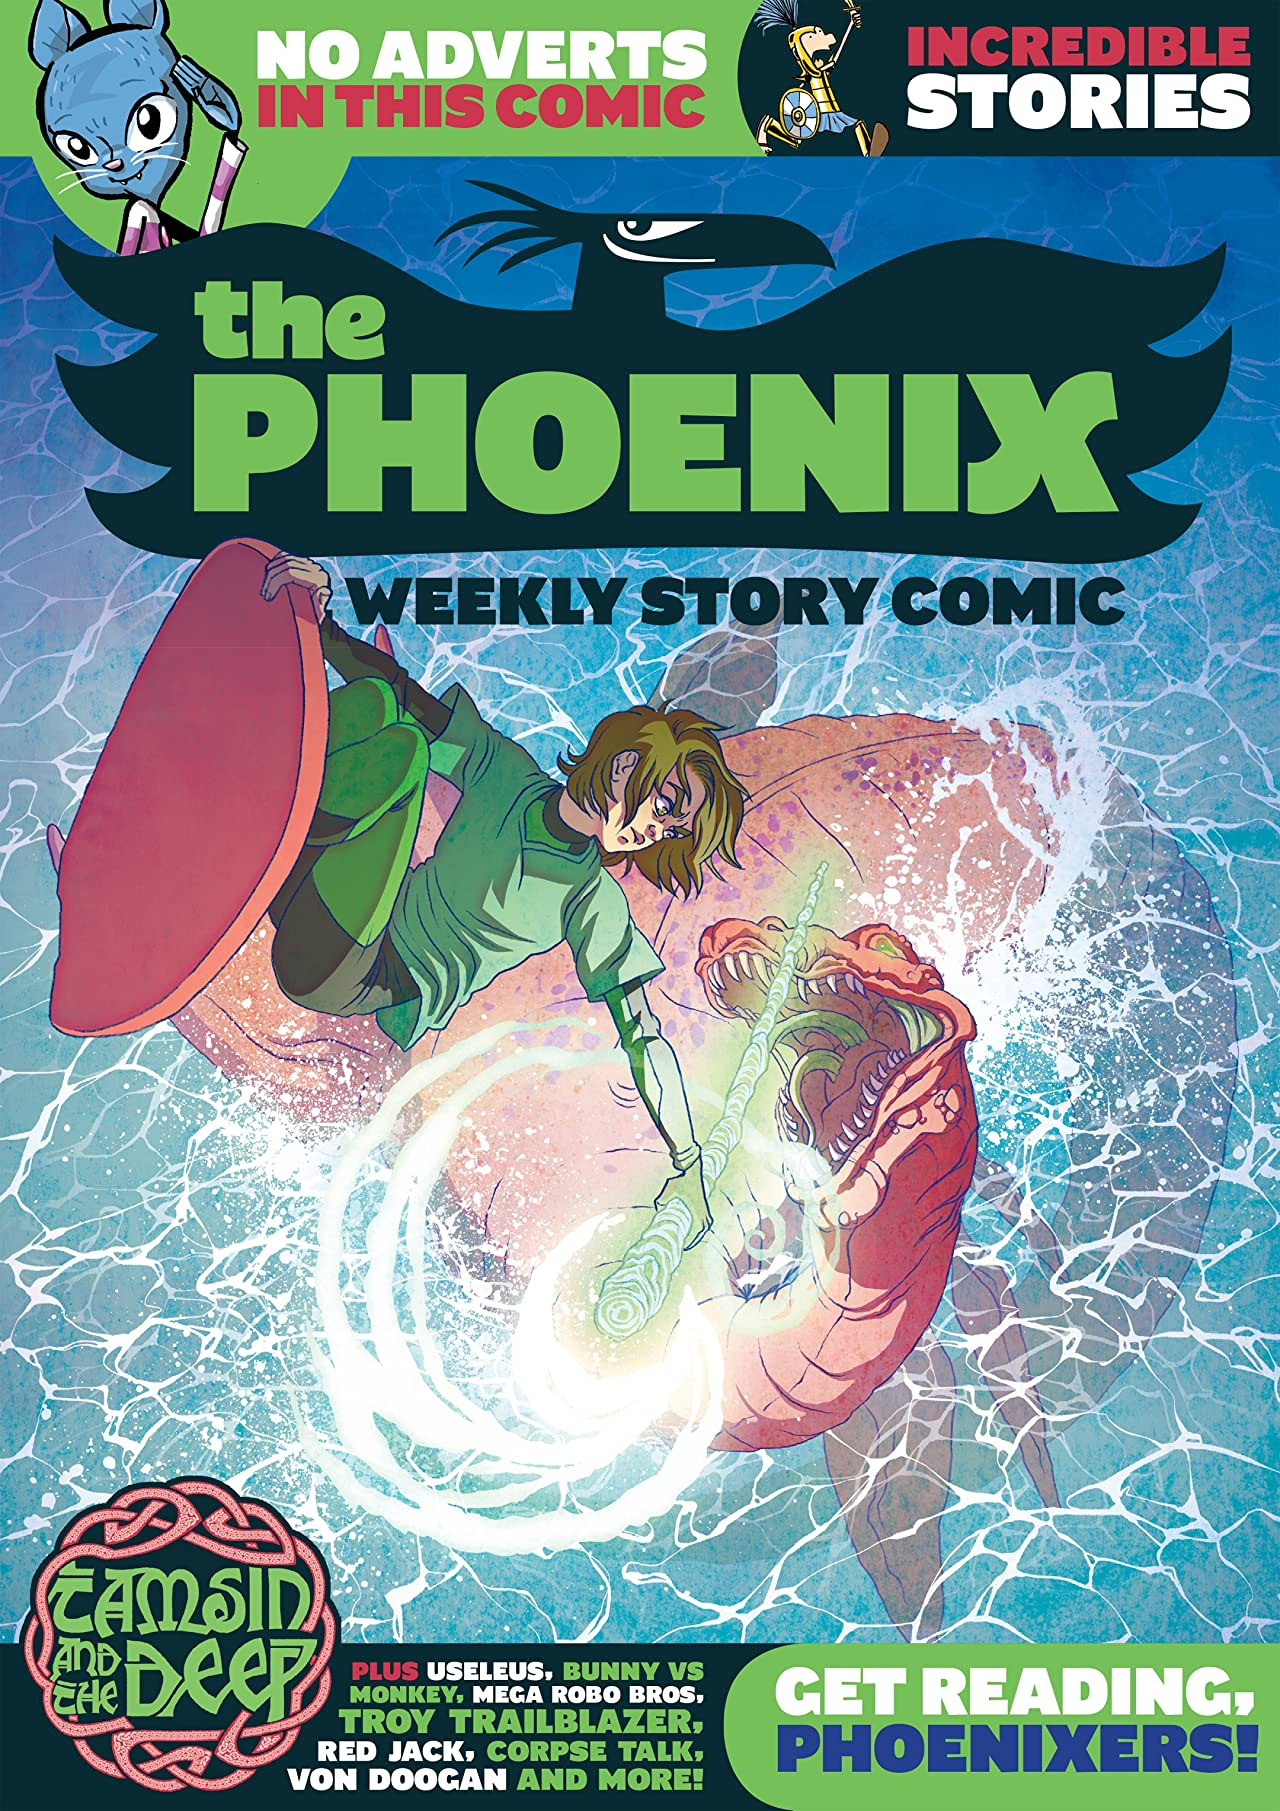 The Phoenix #157: The Weekly Story Comic